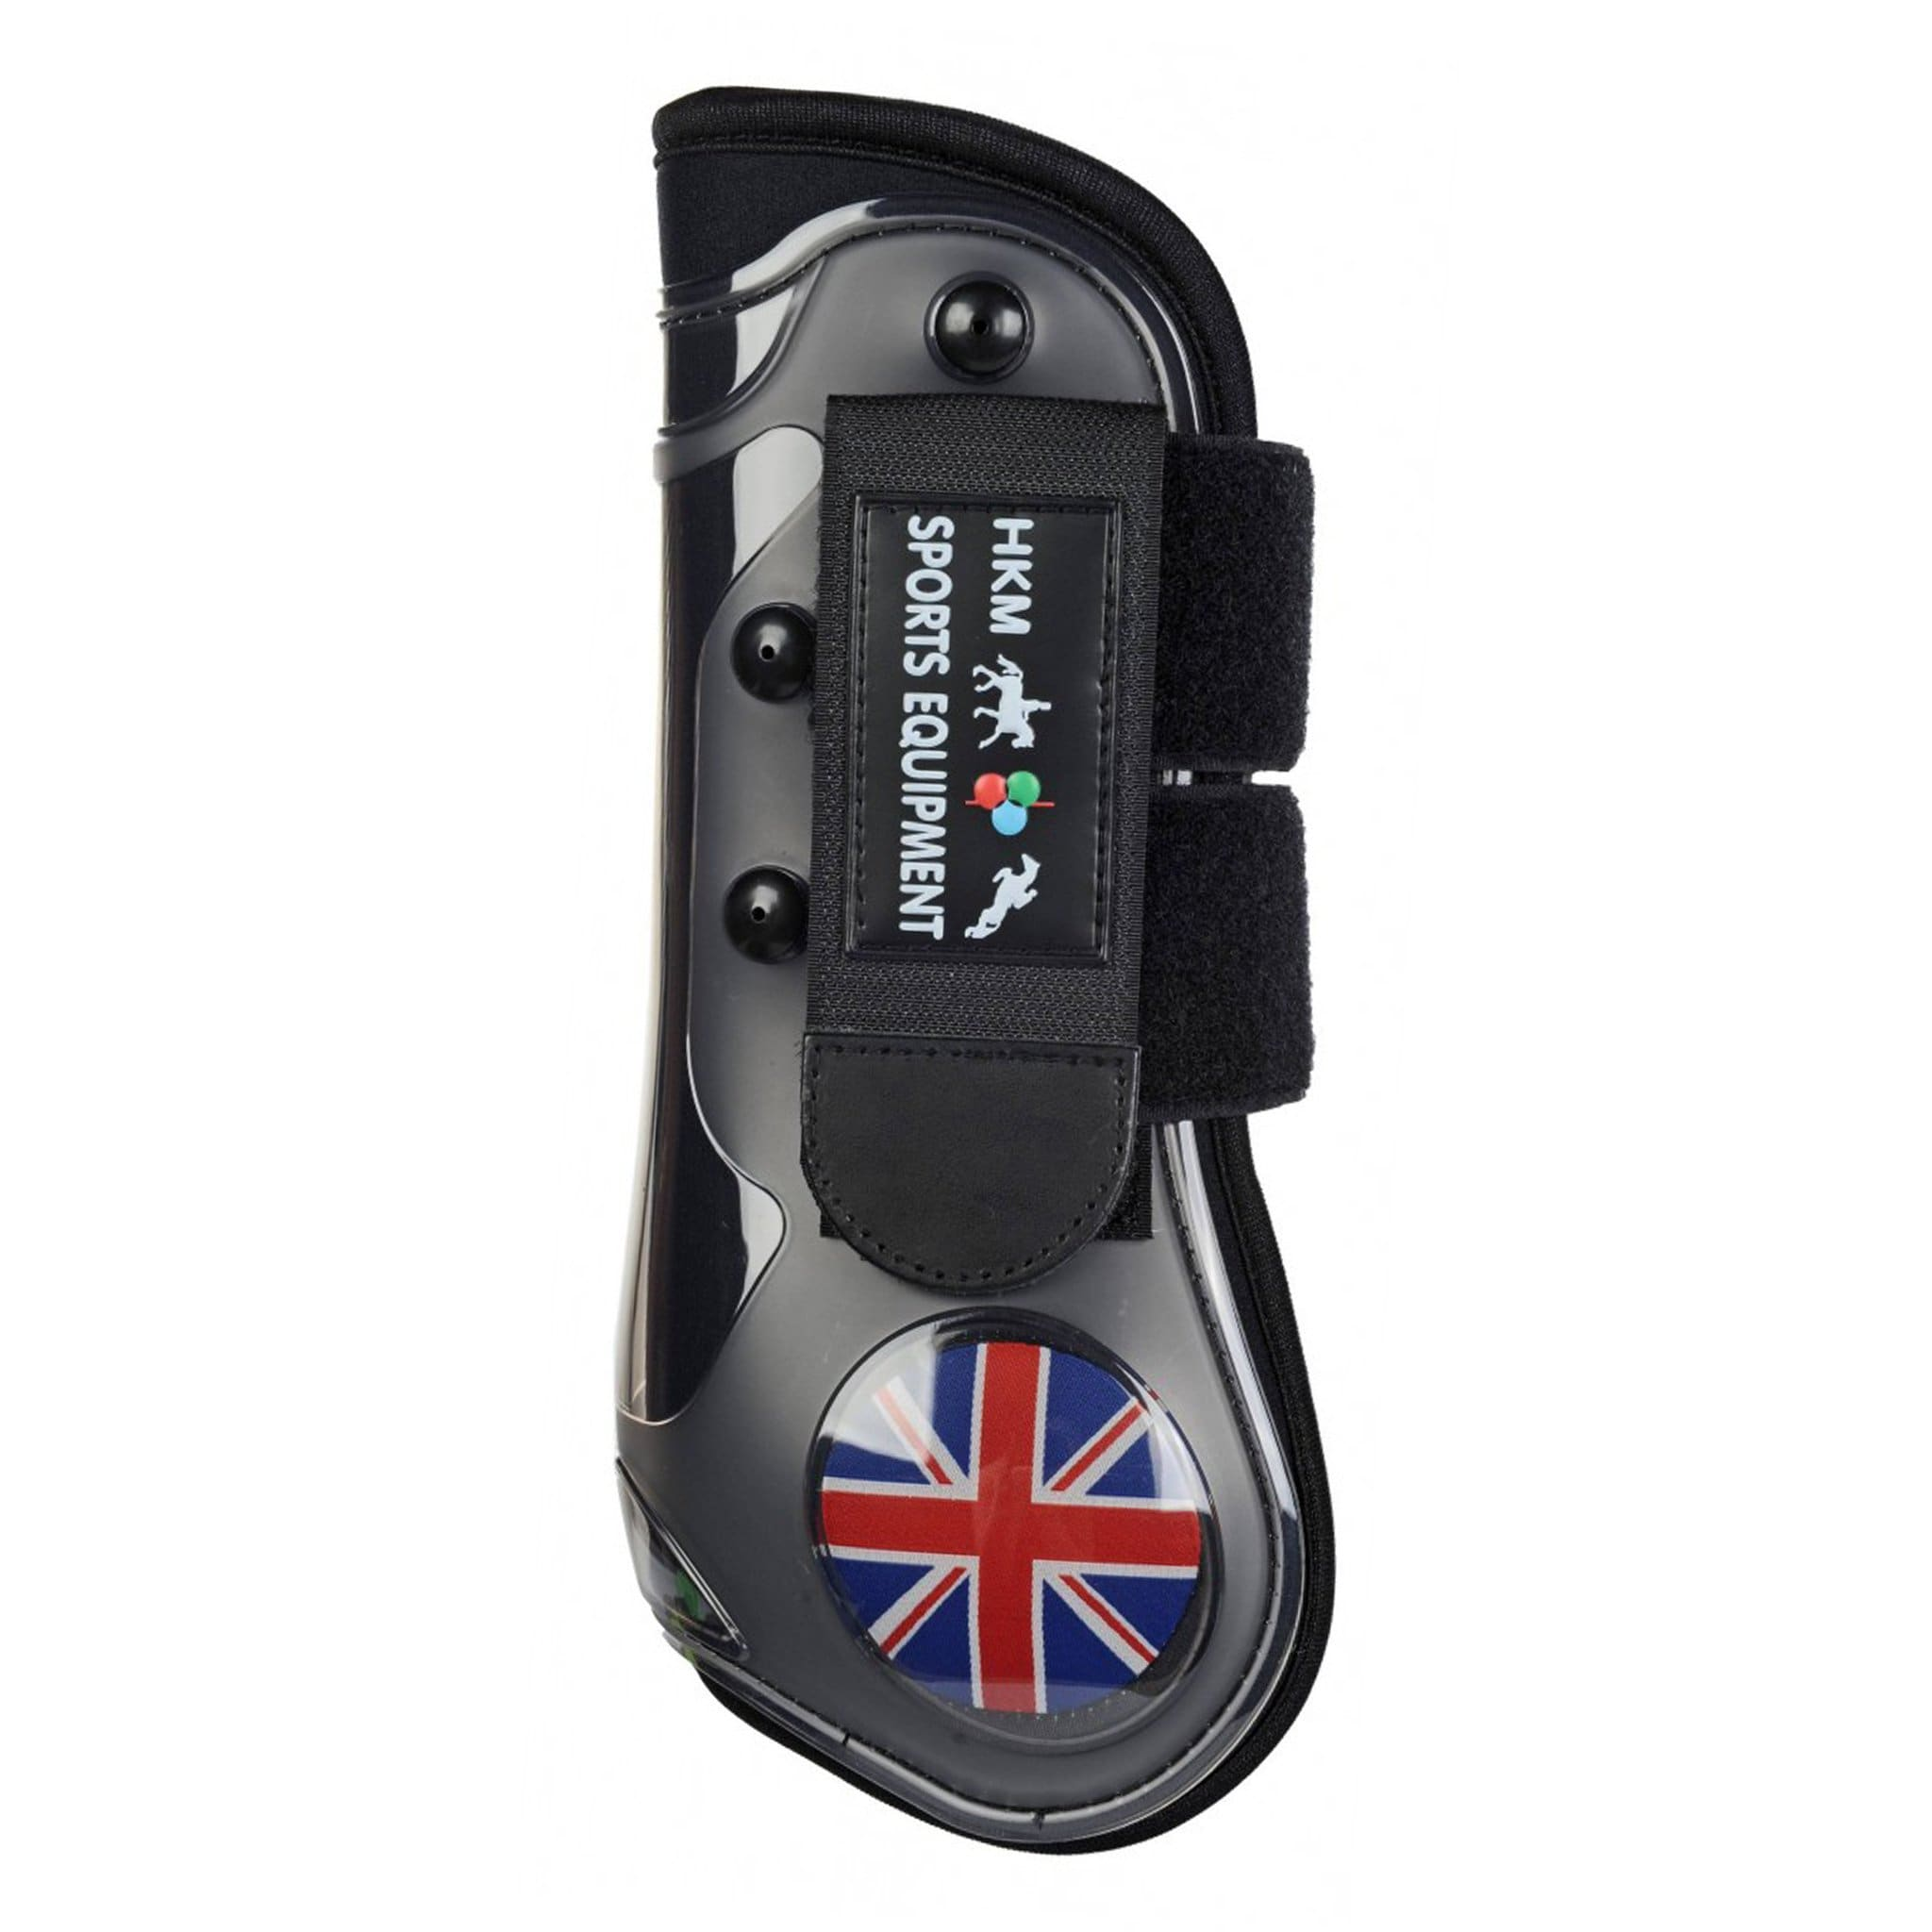 HKM Flags Tendon Boots GBR UK United Kingdom 7048